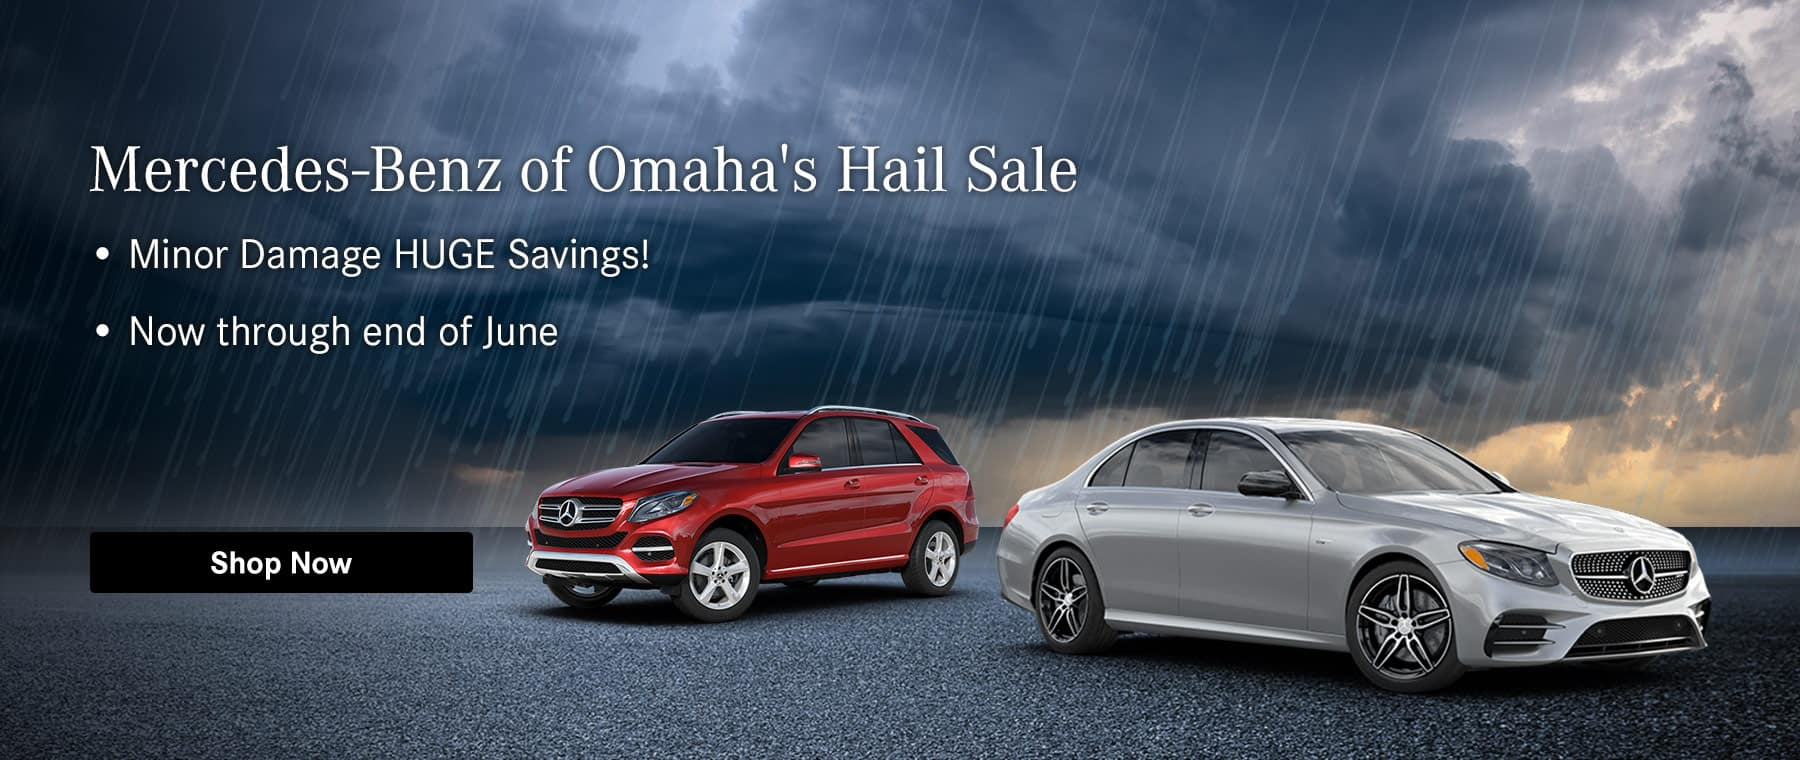 Mercedes-Benz of Omaha's Hail Sale